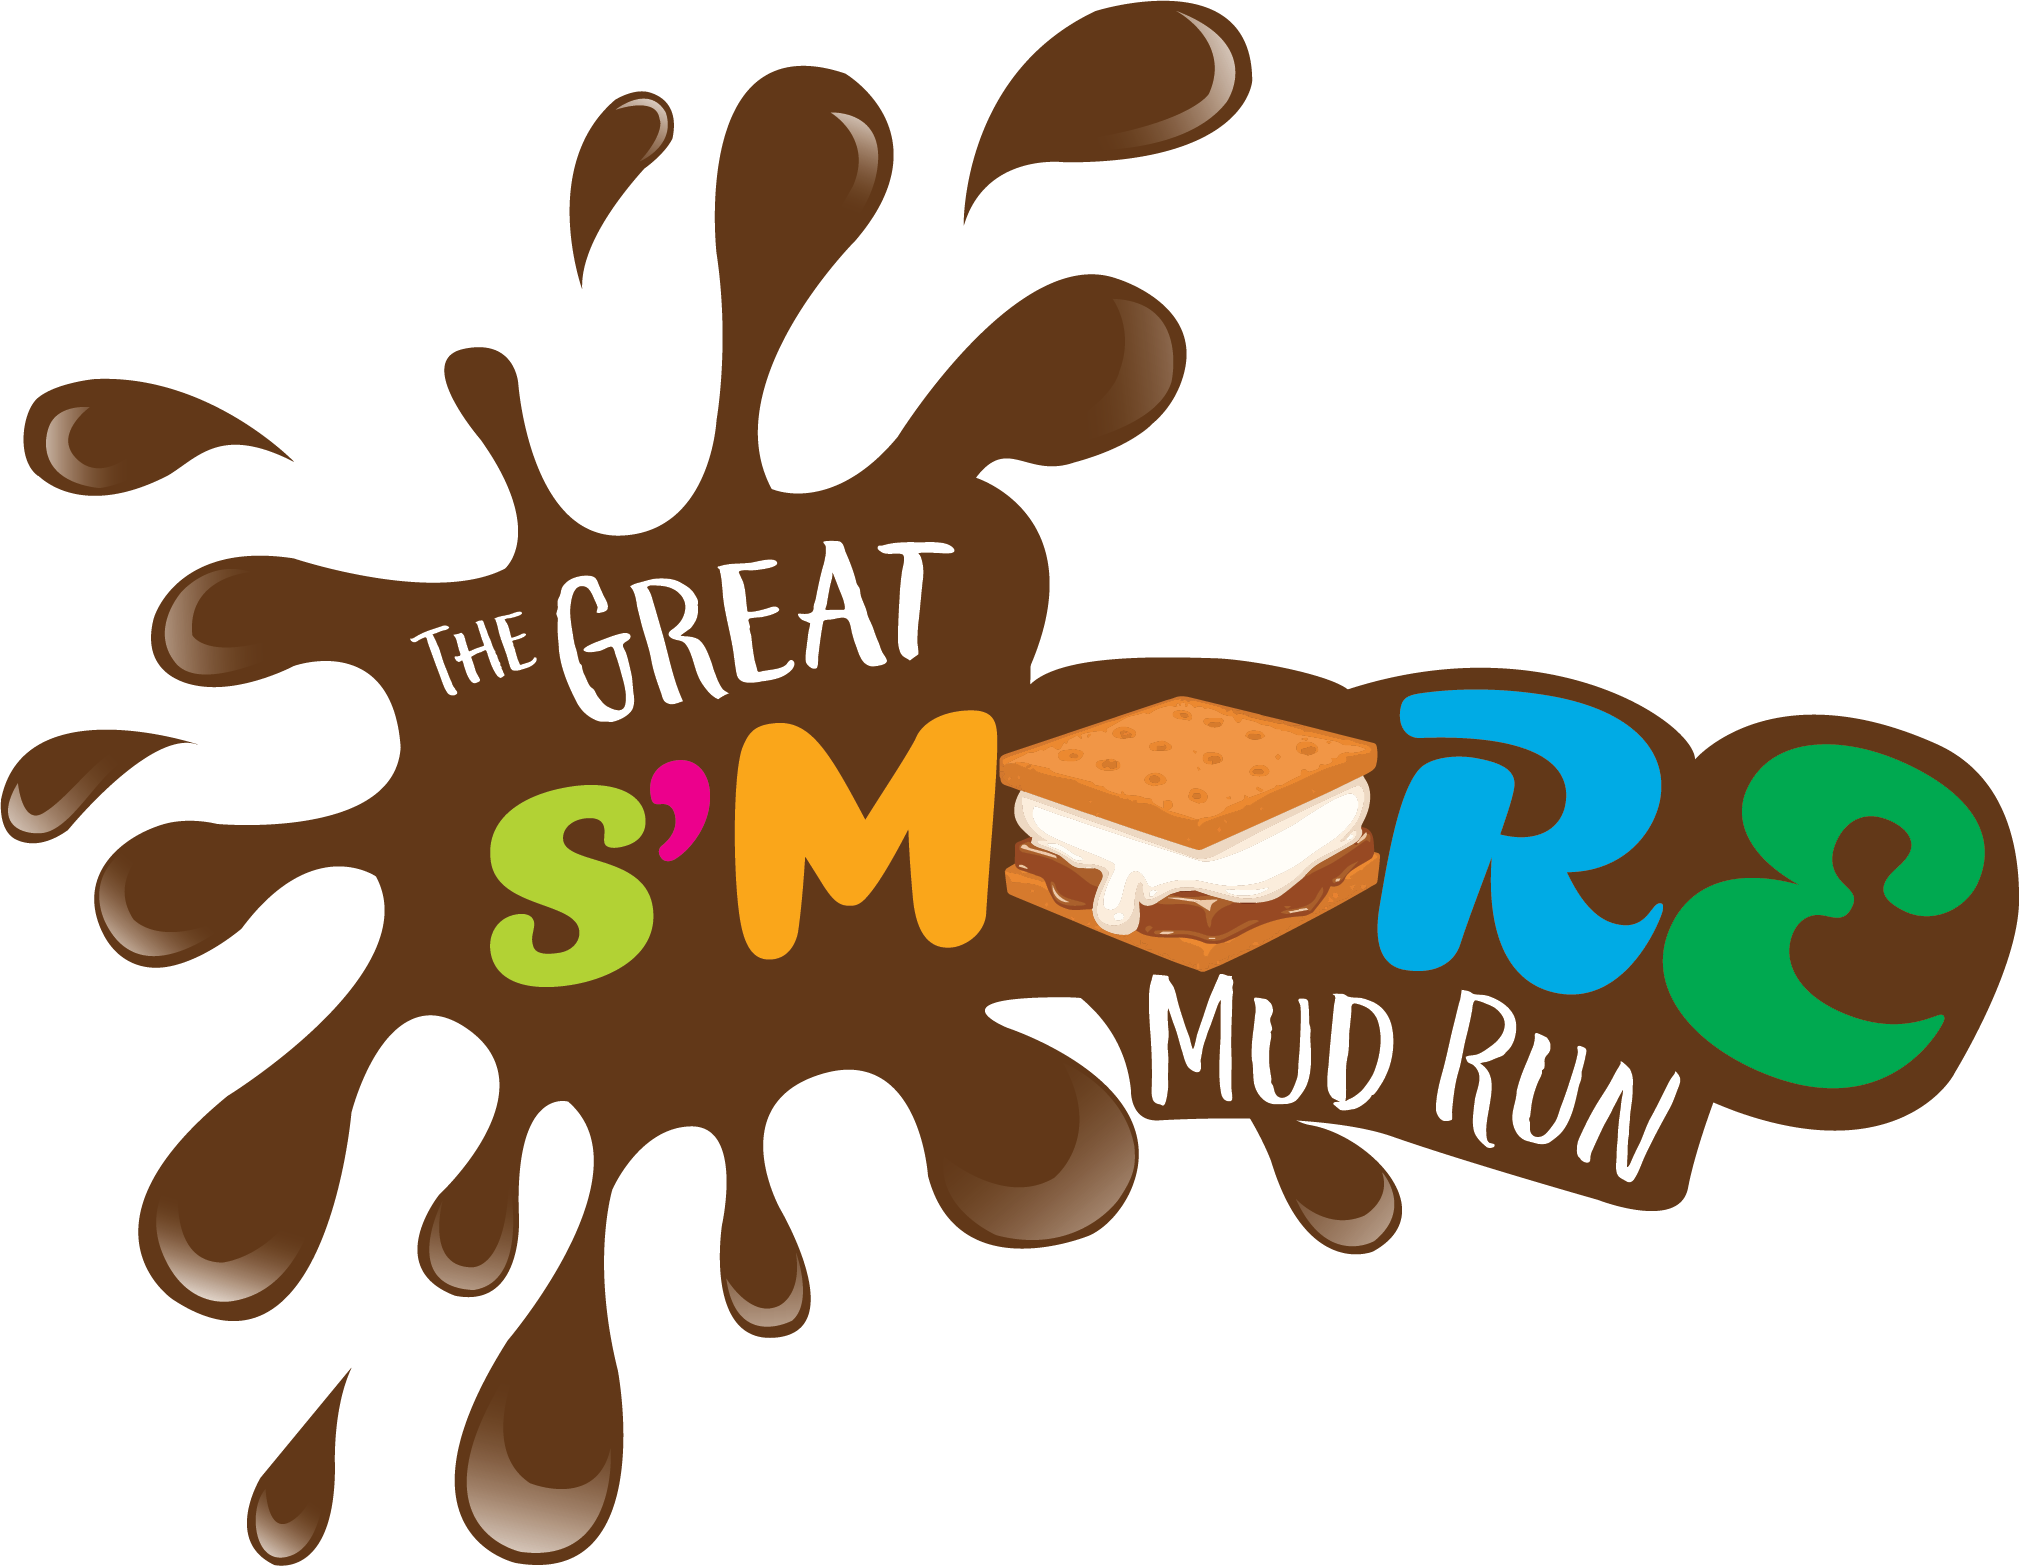 The Great S'more Mud Run